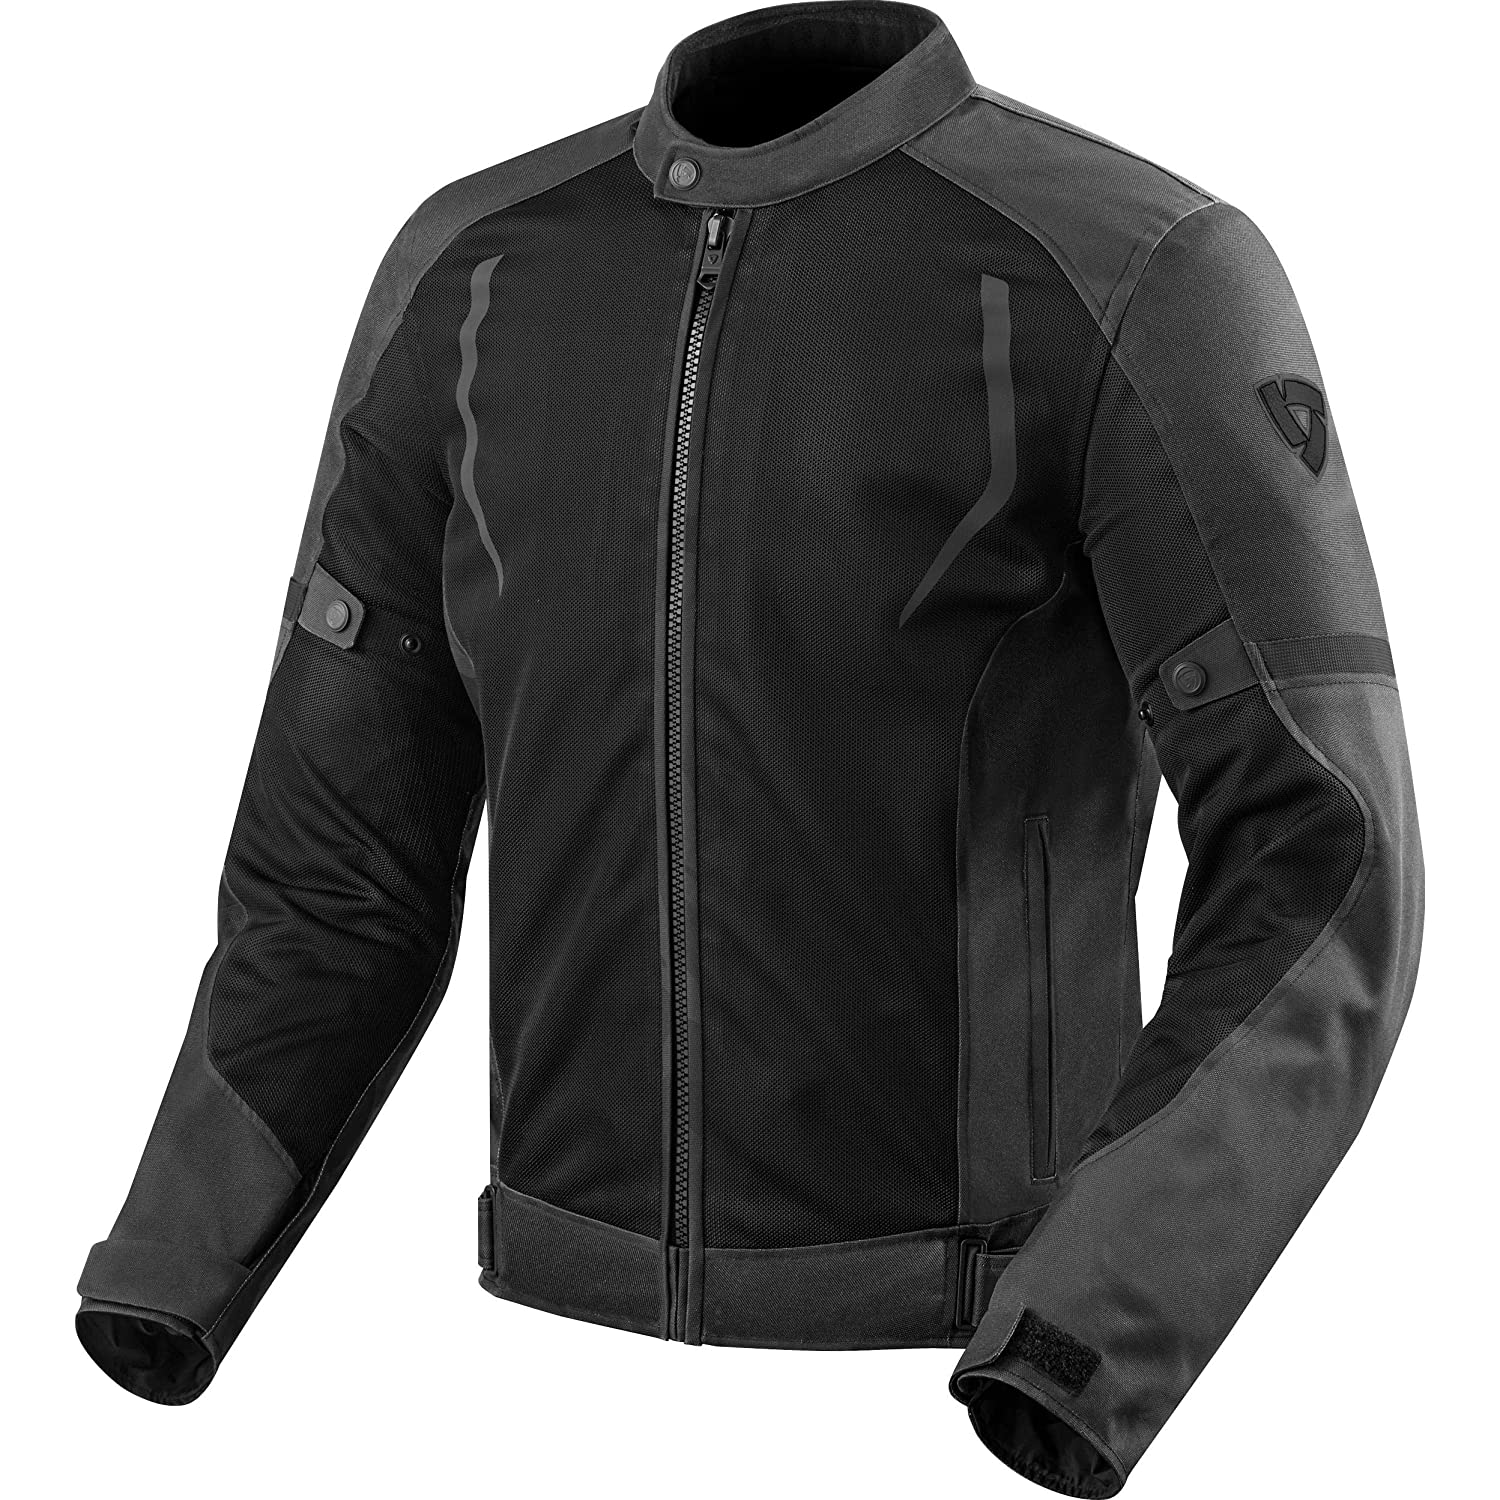 FJT247 - 1010-M - Rev It Torque Motorcycle Jacket M Black